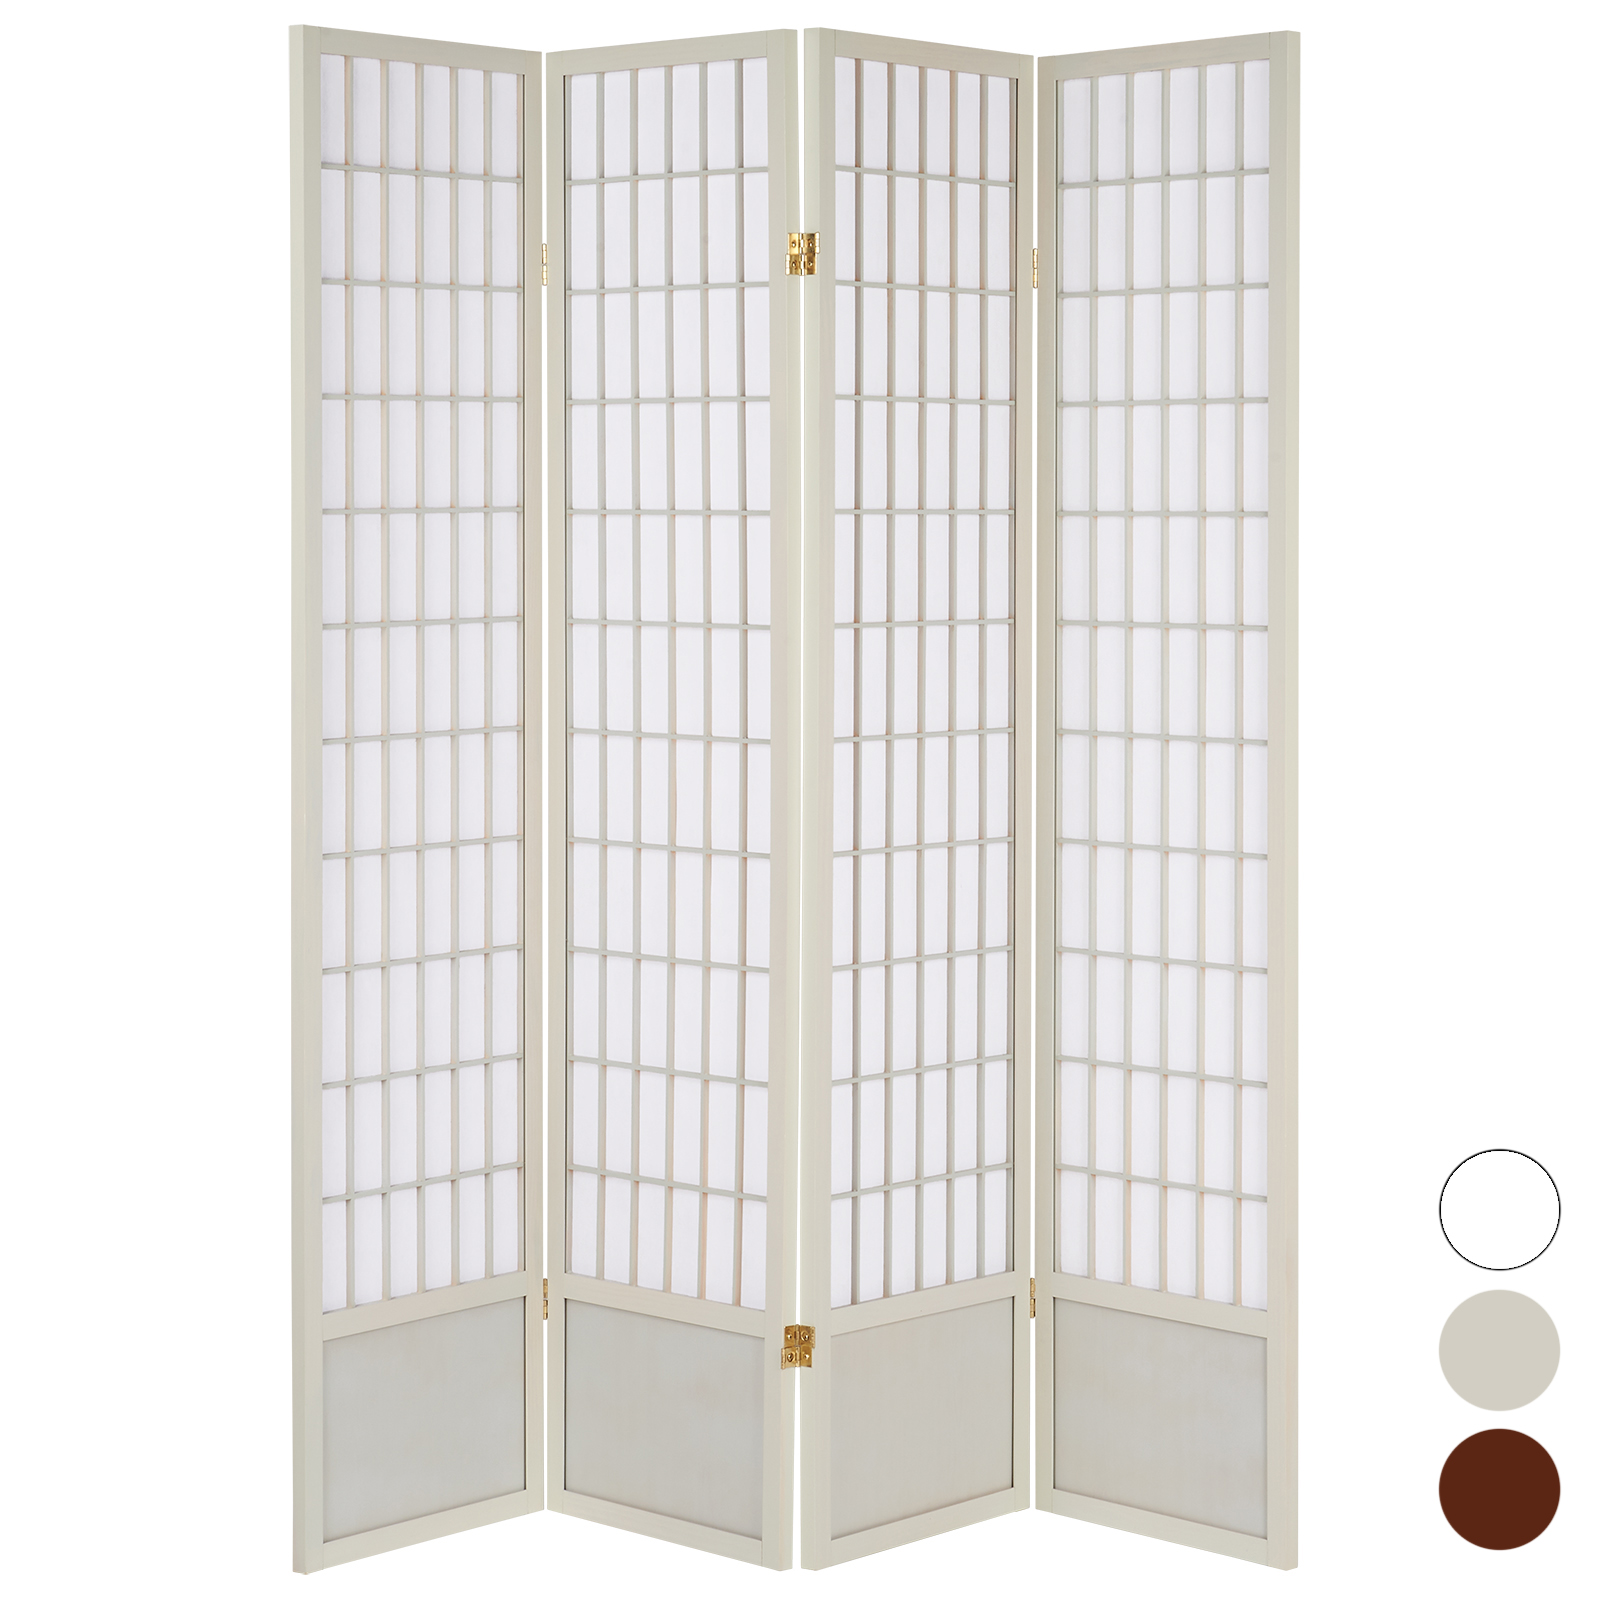 Admirable Details About Hartleys 4 Panel Folding Japanese Room Divider Screen Shoji Partition Separator Home Interior And Landscaping Ologienasavecom